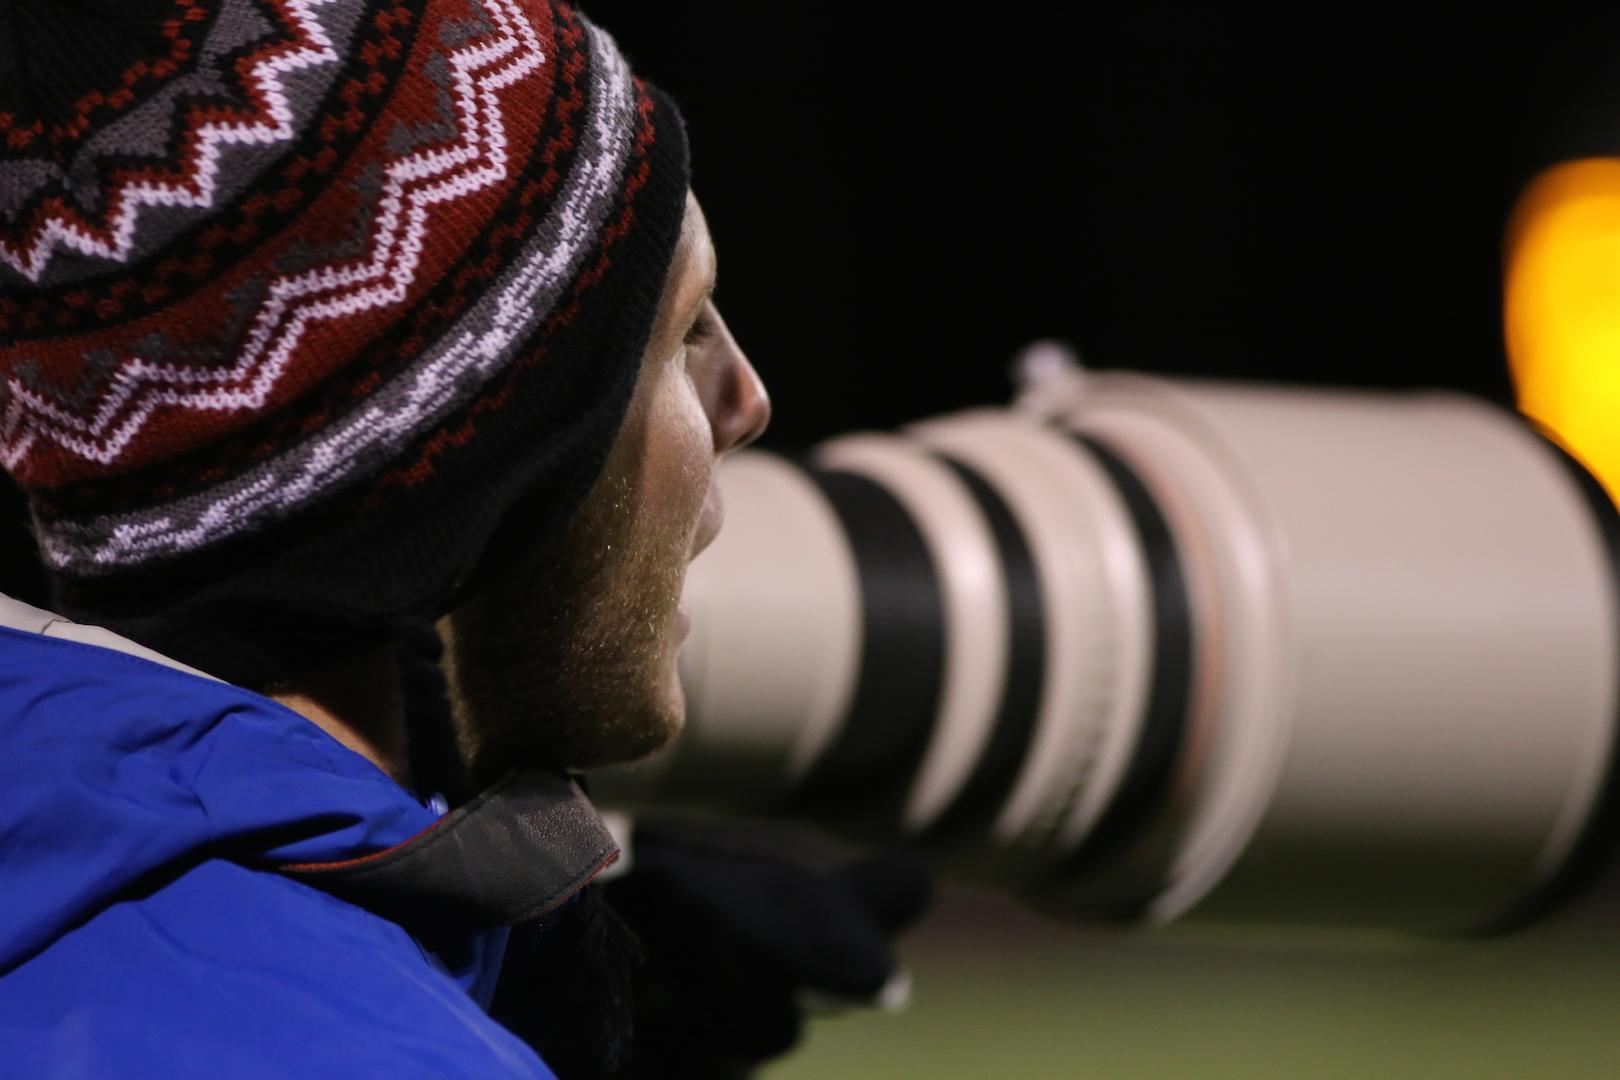 Meyer photographs a football game. He moved to the United States because his father's job was transferred.